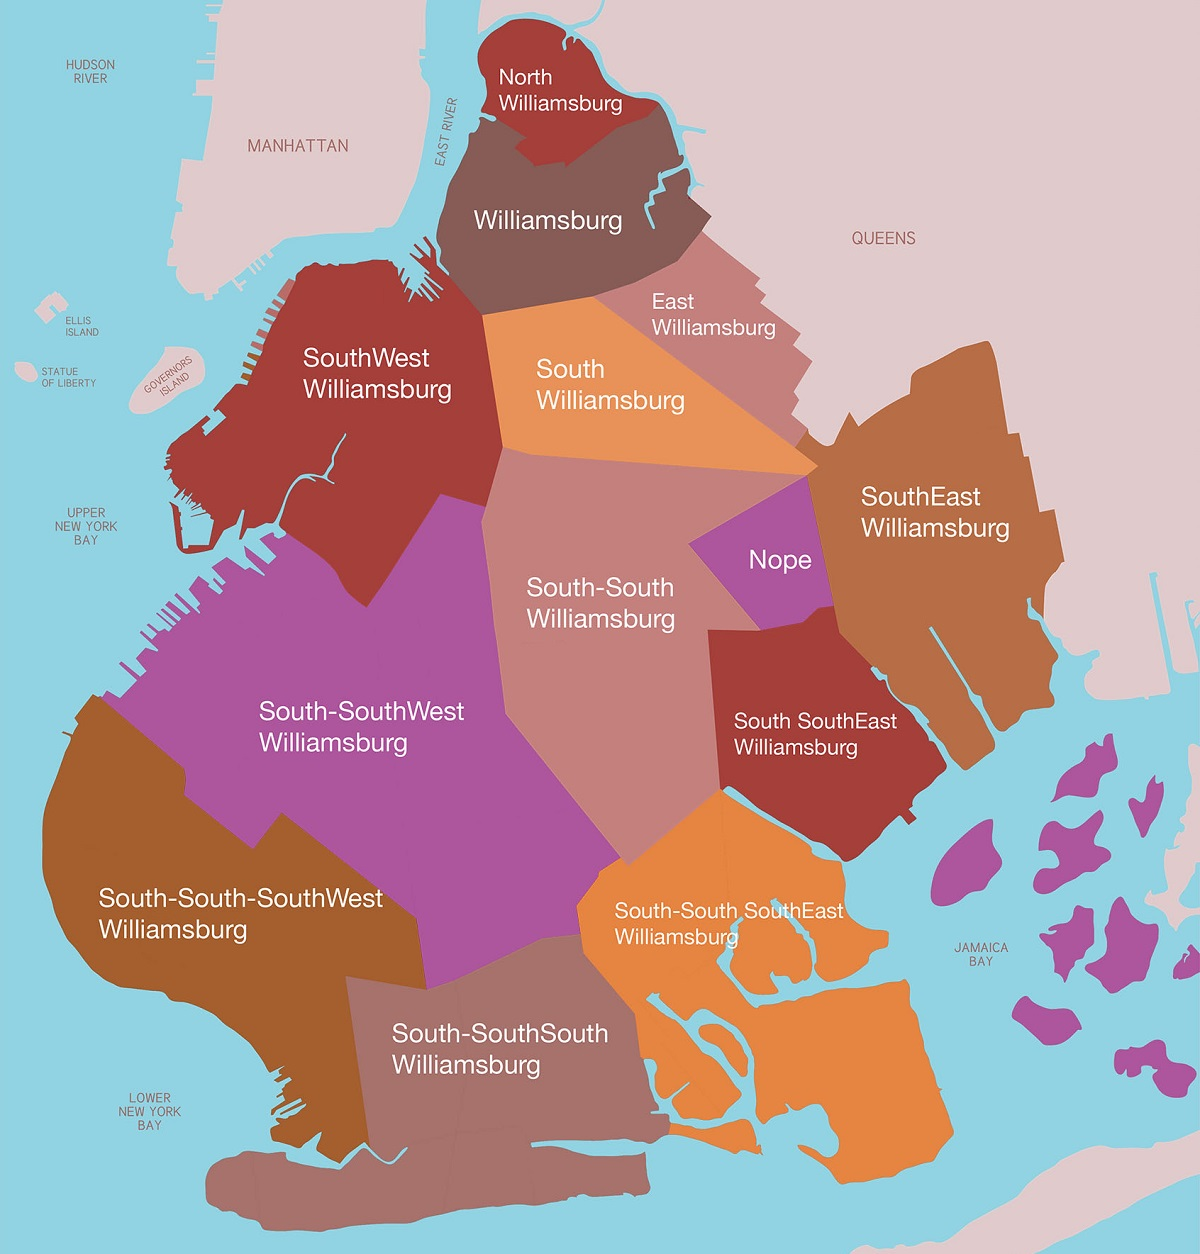 According to Real Estate Brokers All of Brooklyn Is an Extension of